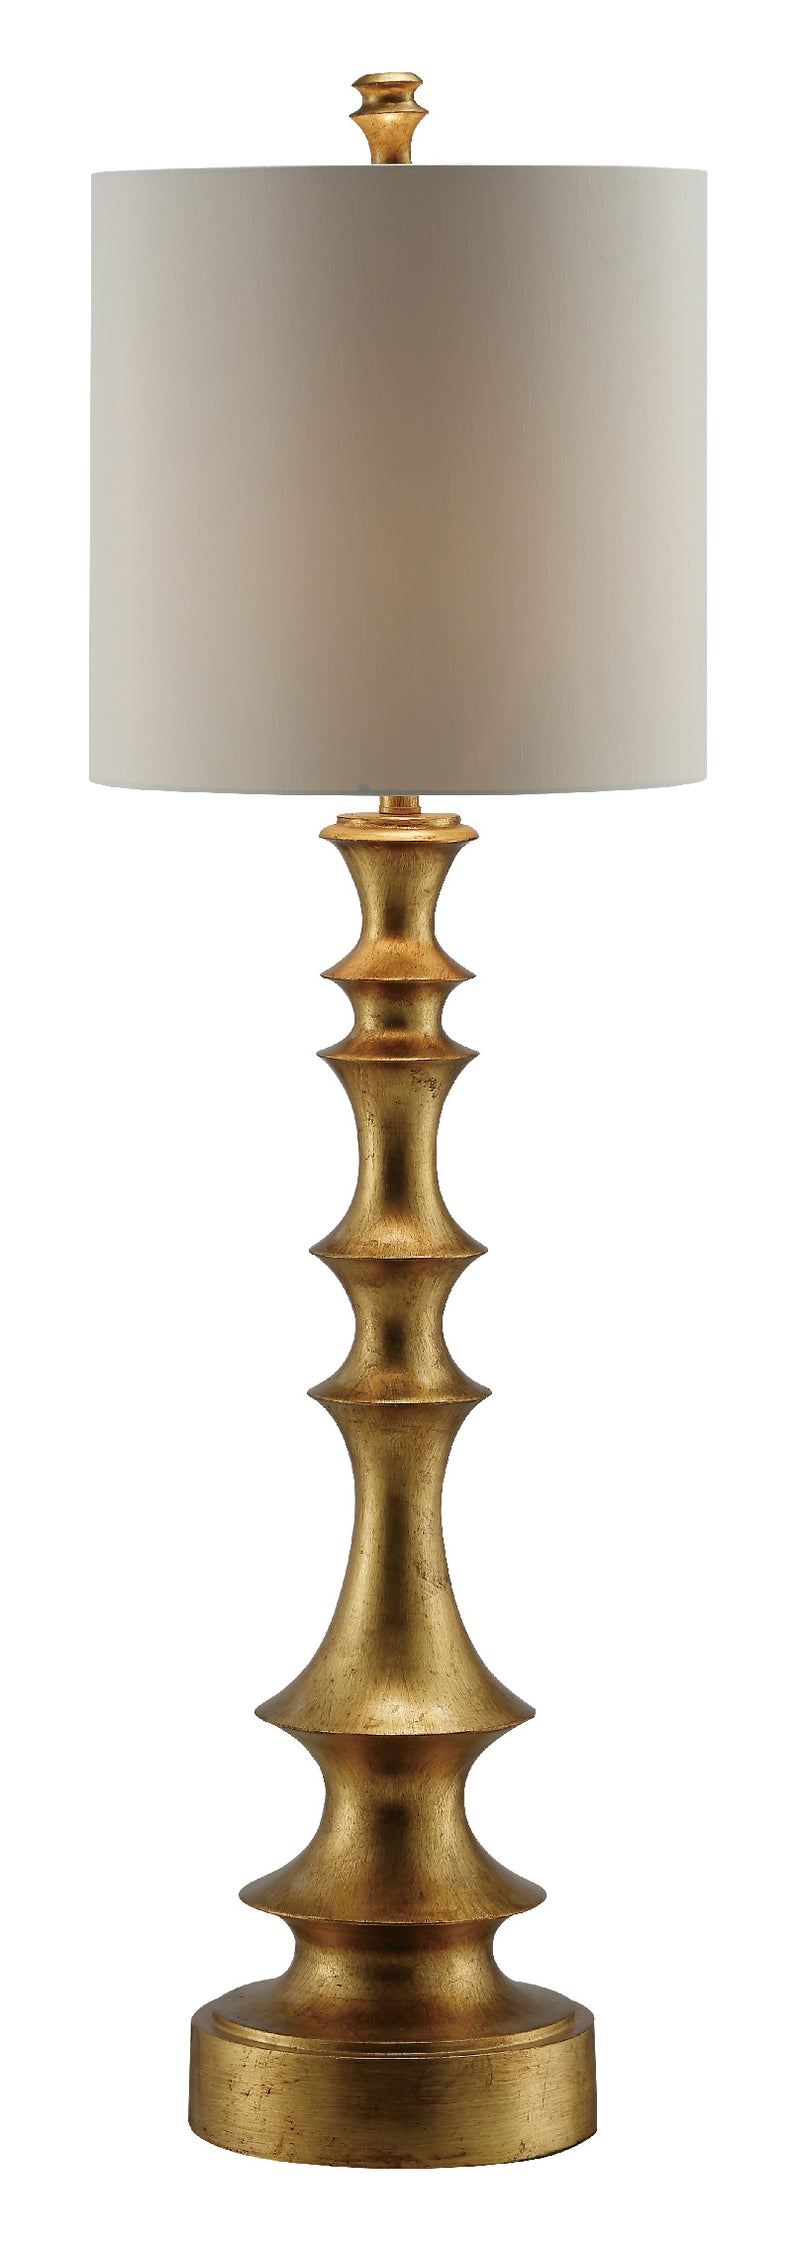 Langston Table Lamp